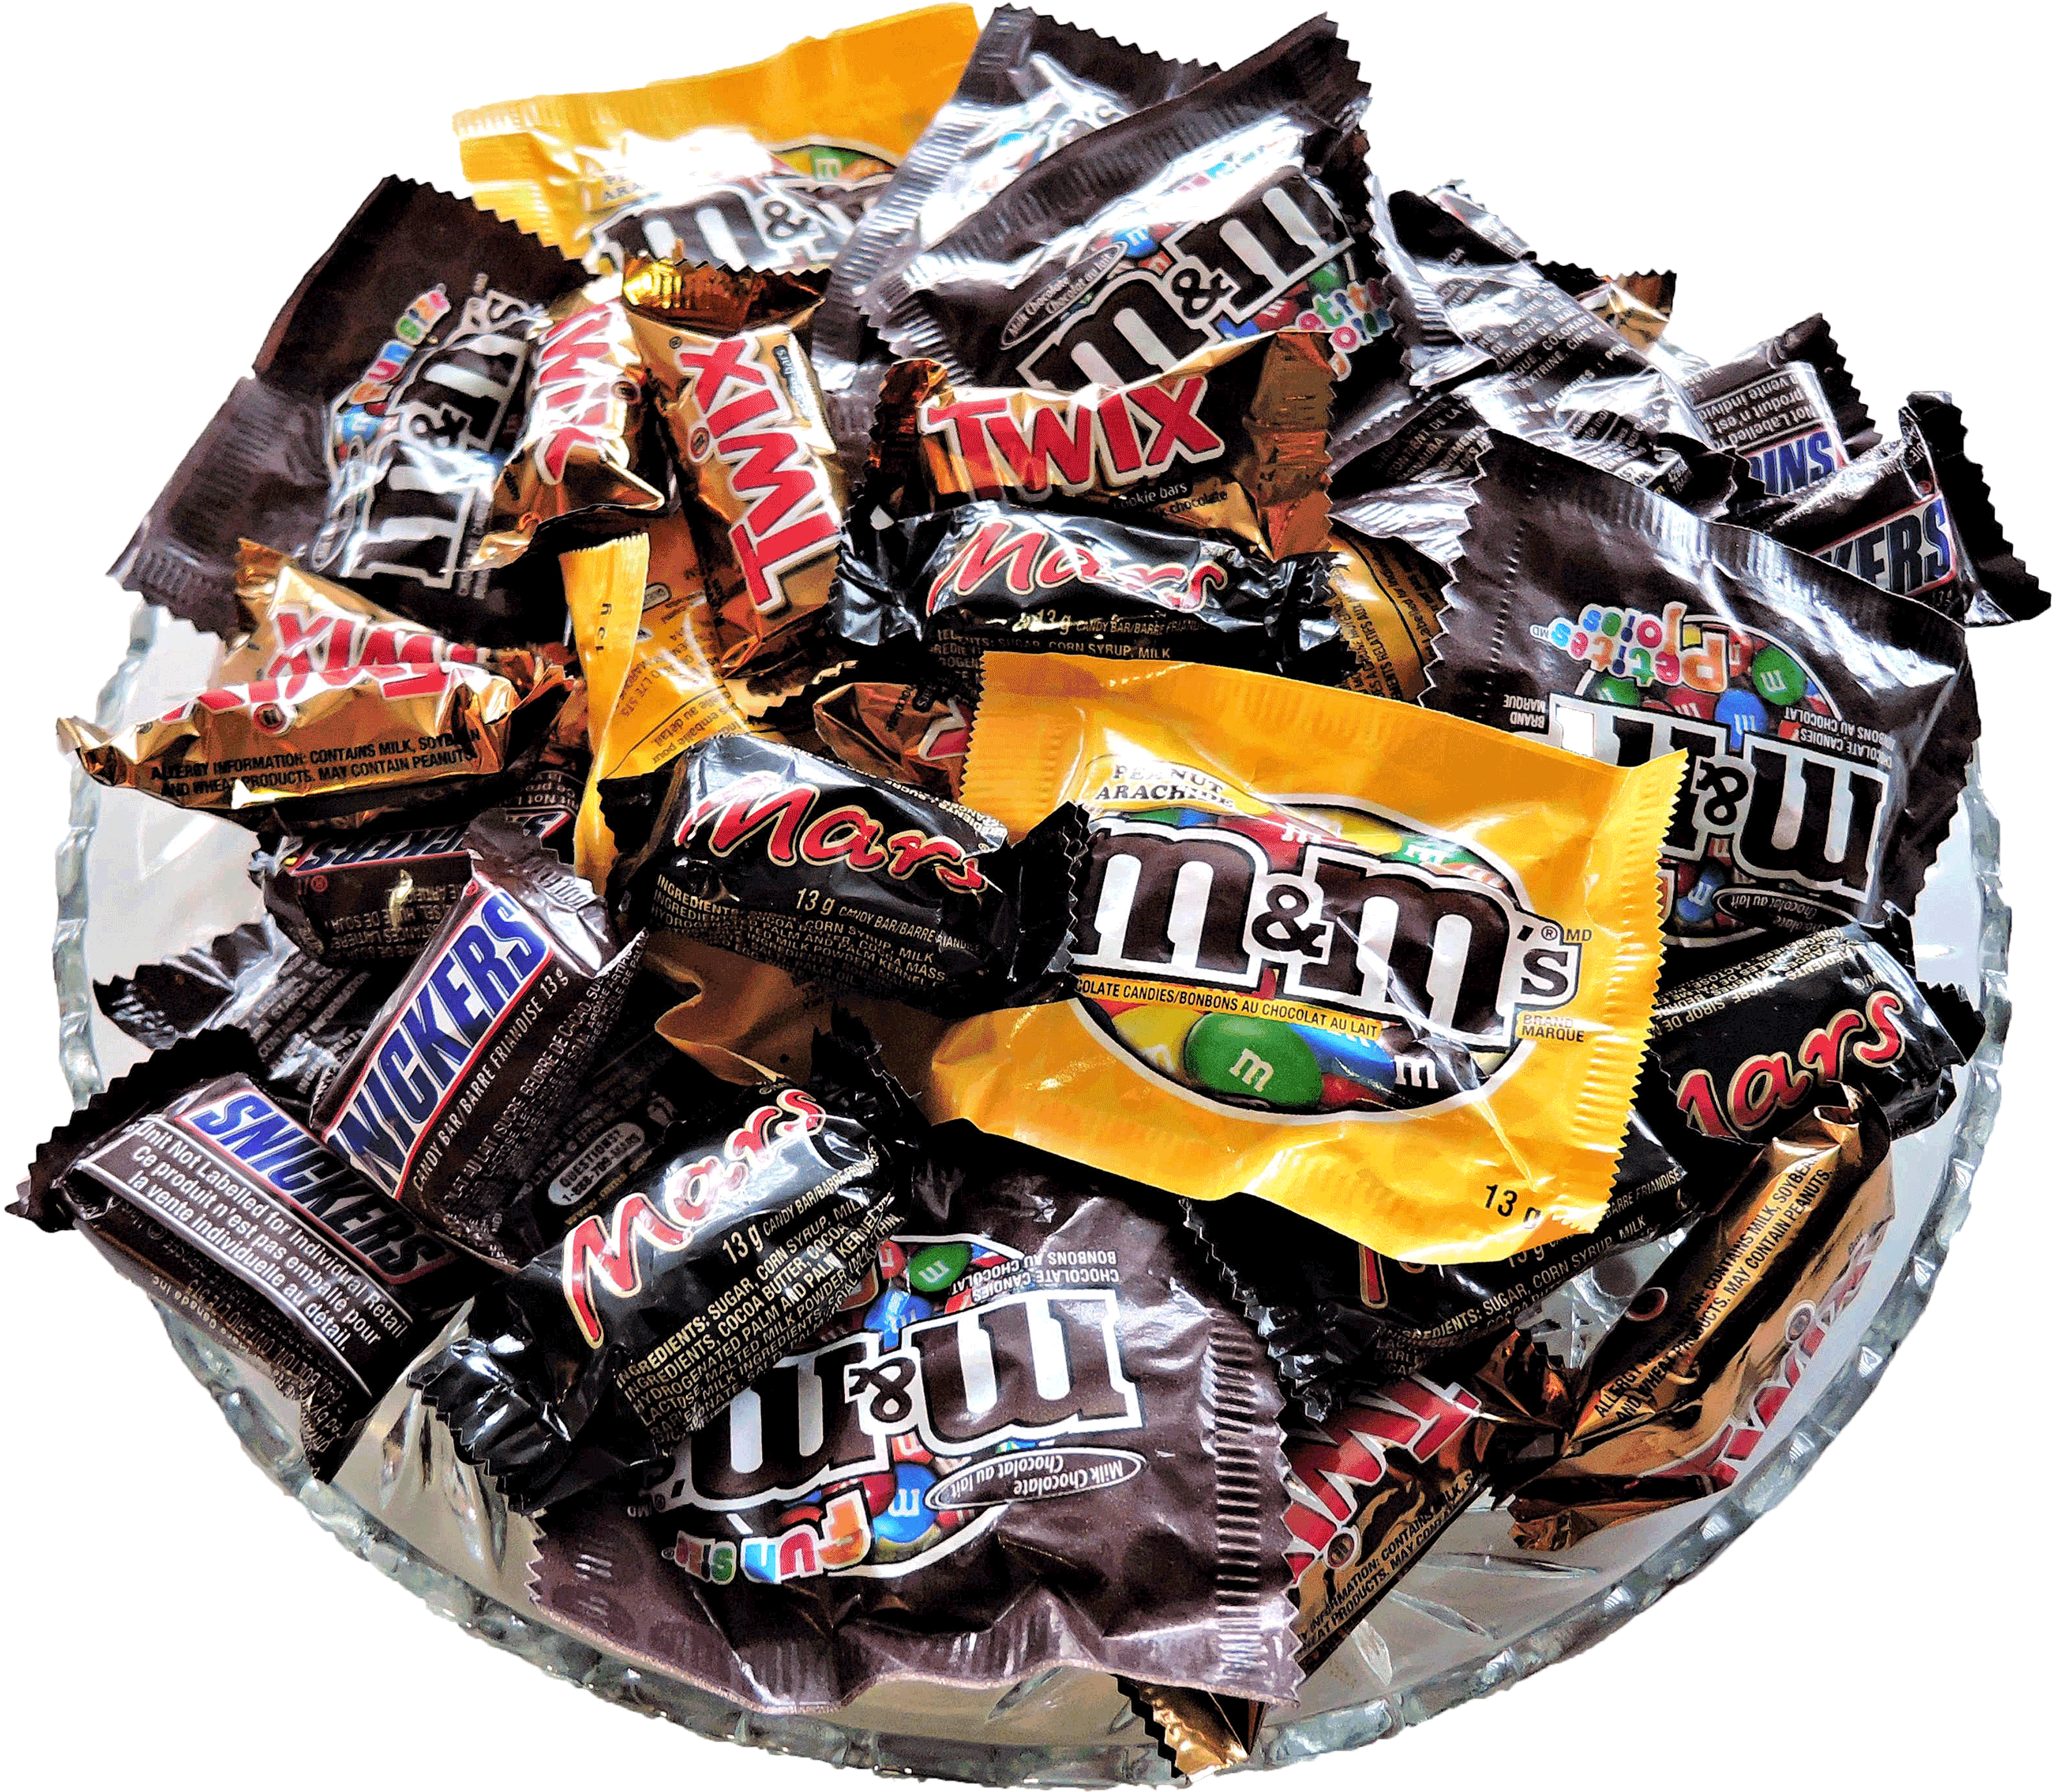 Halloween candy bowl clipart jpg freeuse download Free Halloween PNG Images jpg freeuse download